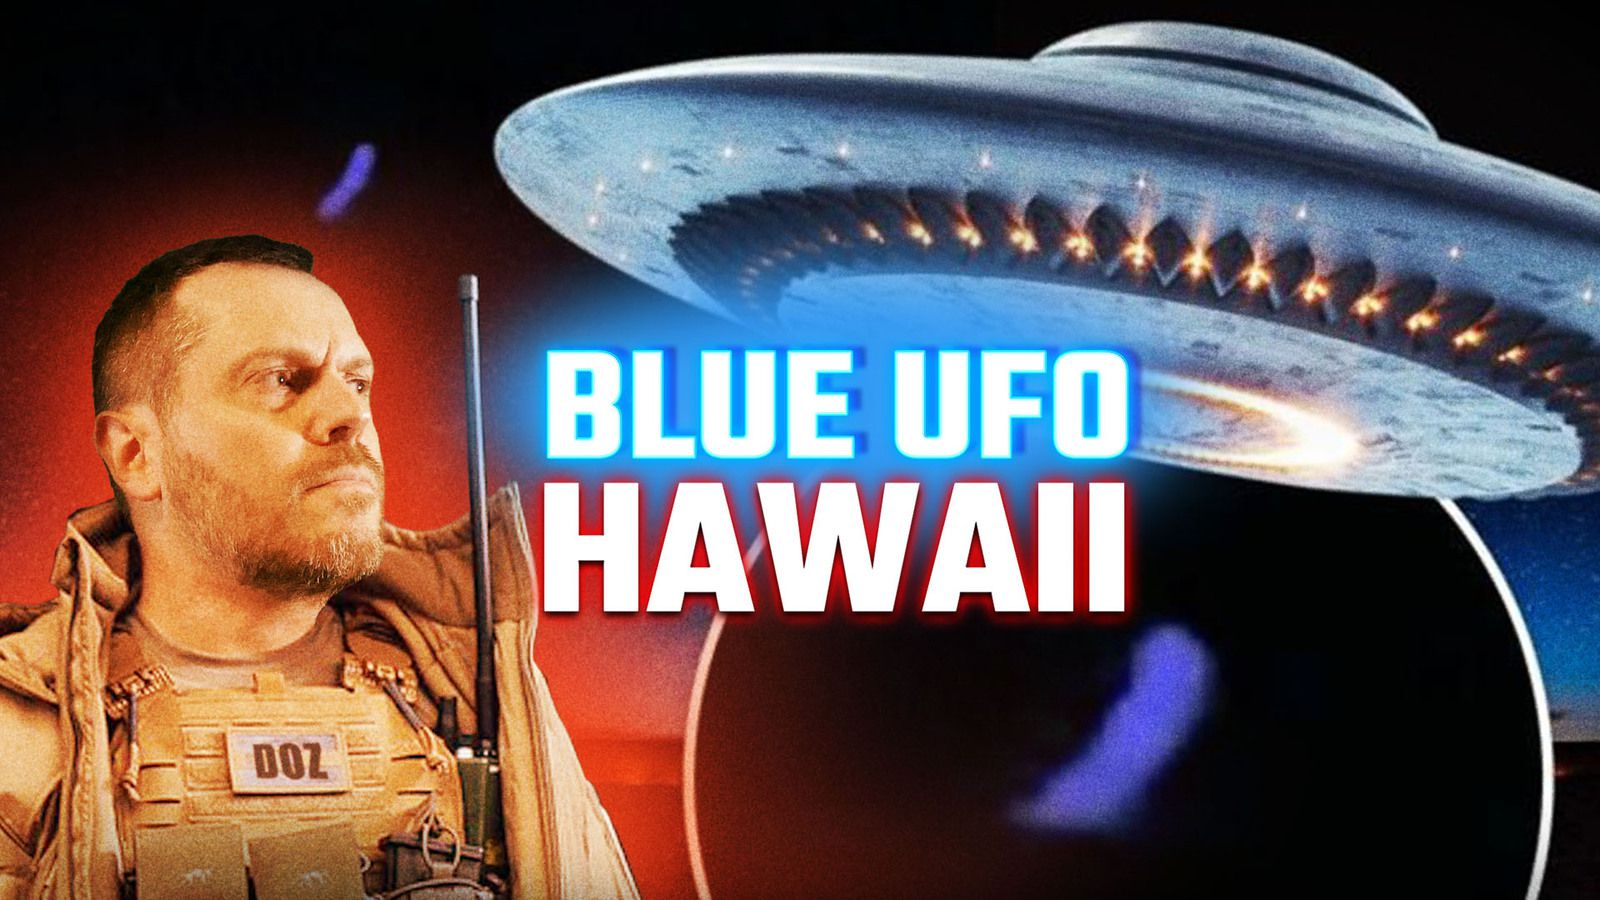 👽 Multiple People Reported Seeing A Mysterious Blue UFO In Hawaii